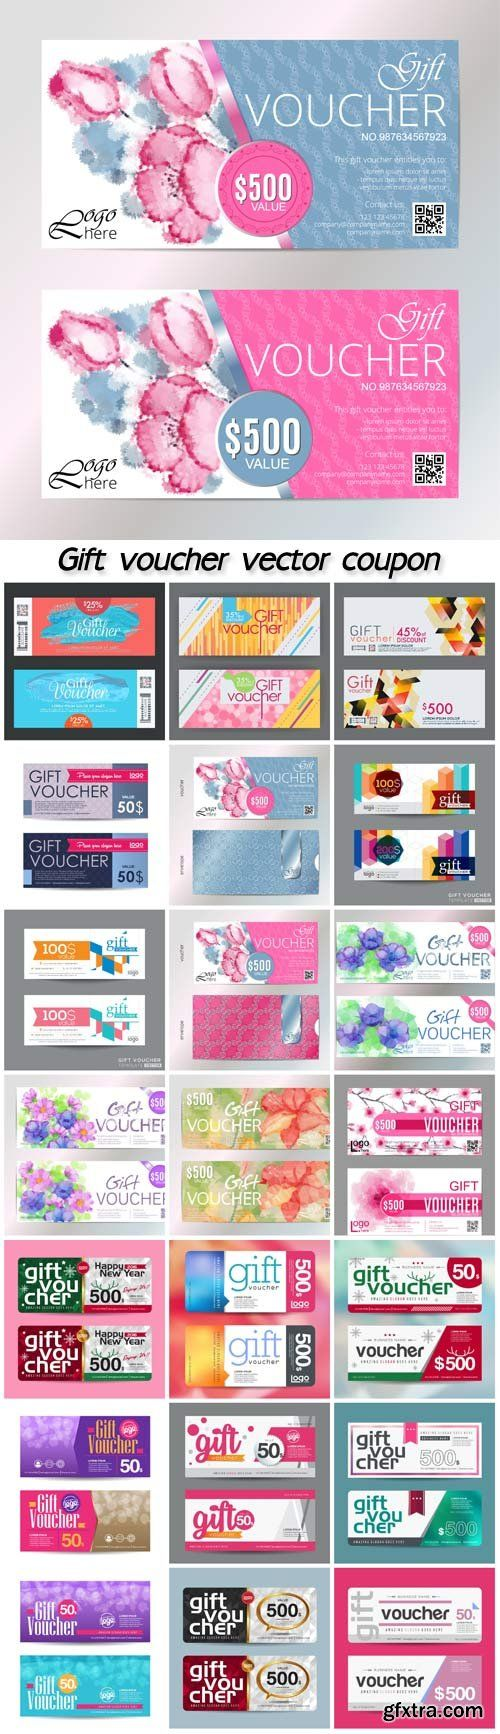 Gift voucher vector coupon